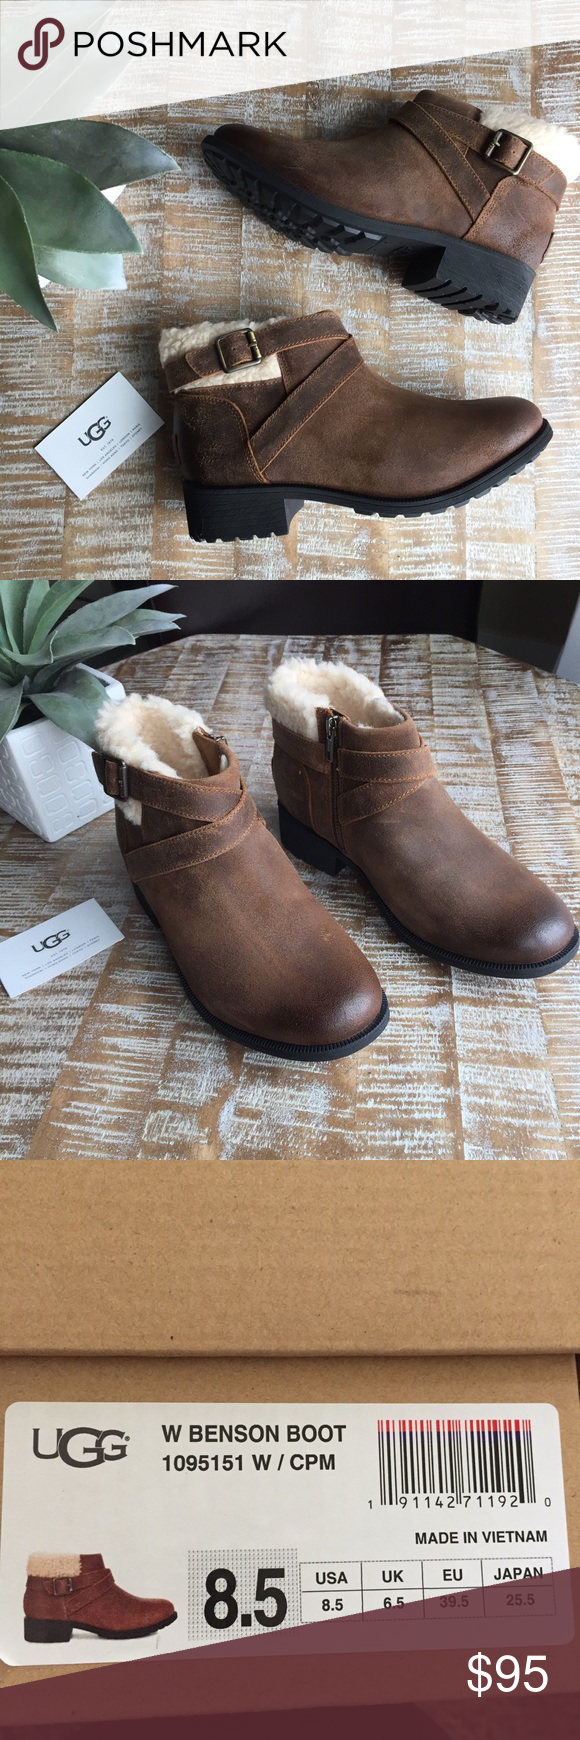 a0257b382f4 UGG Benson Boot 🥾 UGG Benson Boot brand new in box! Size=8.5 Color ...